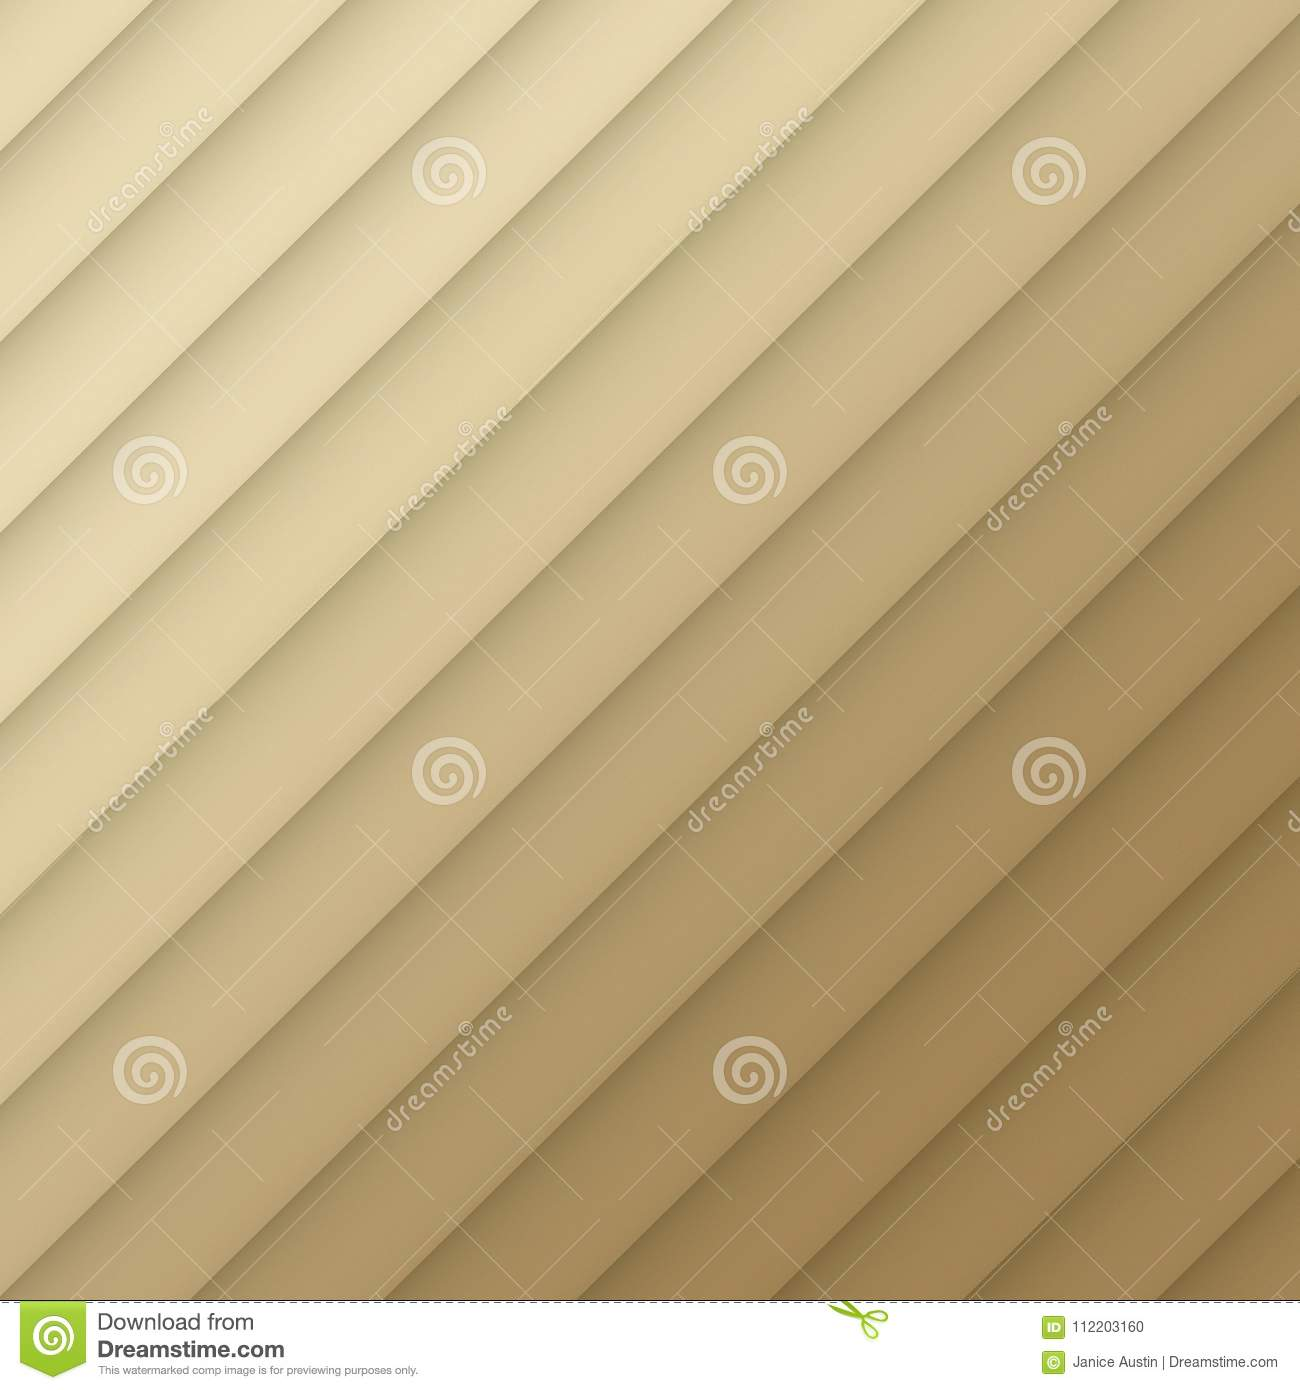 Modern Tan Beige Geometric Diagonal Lines Abstract Wallpaper